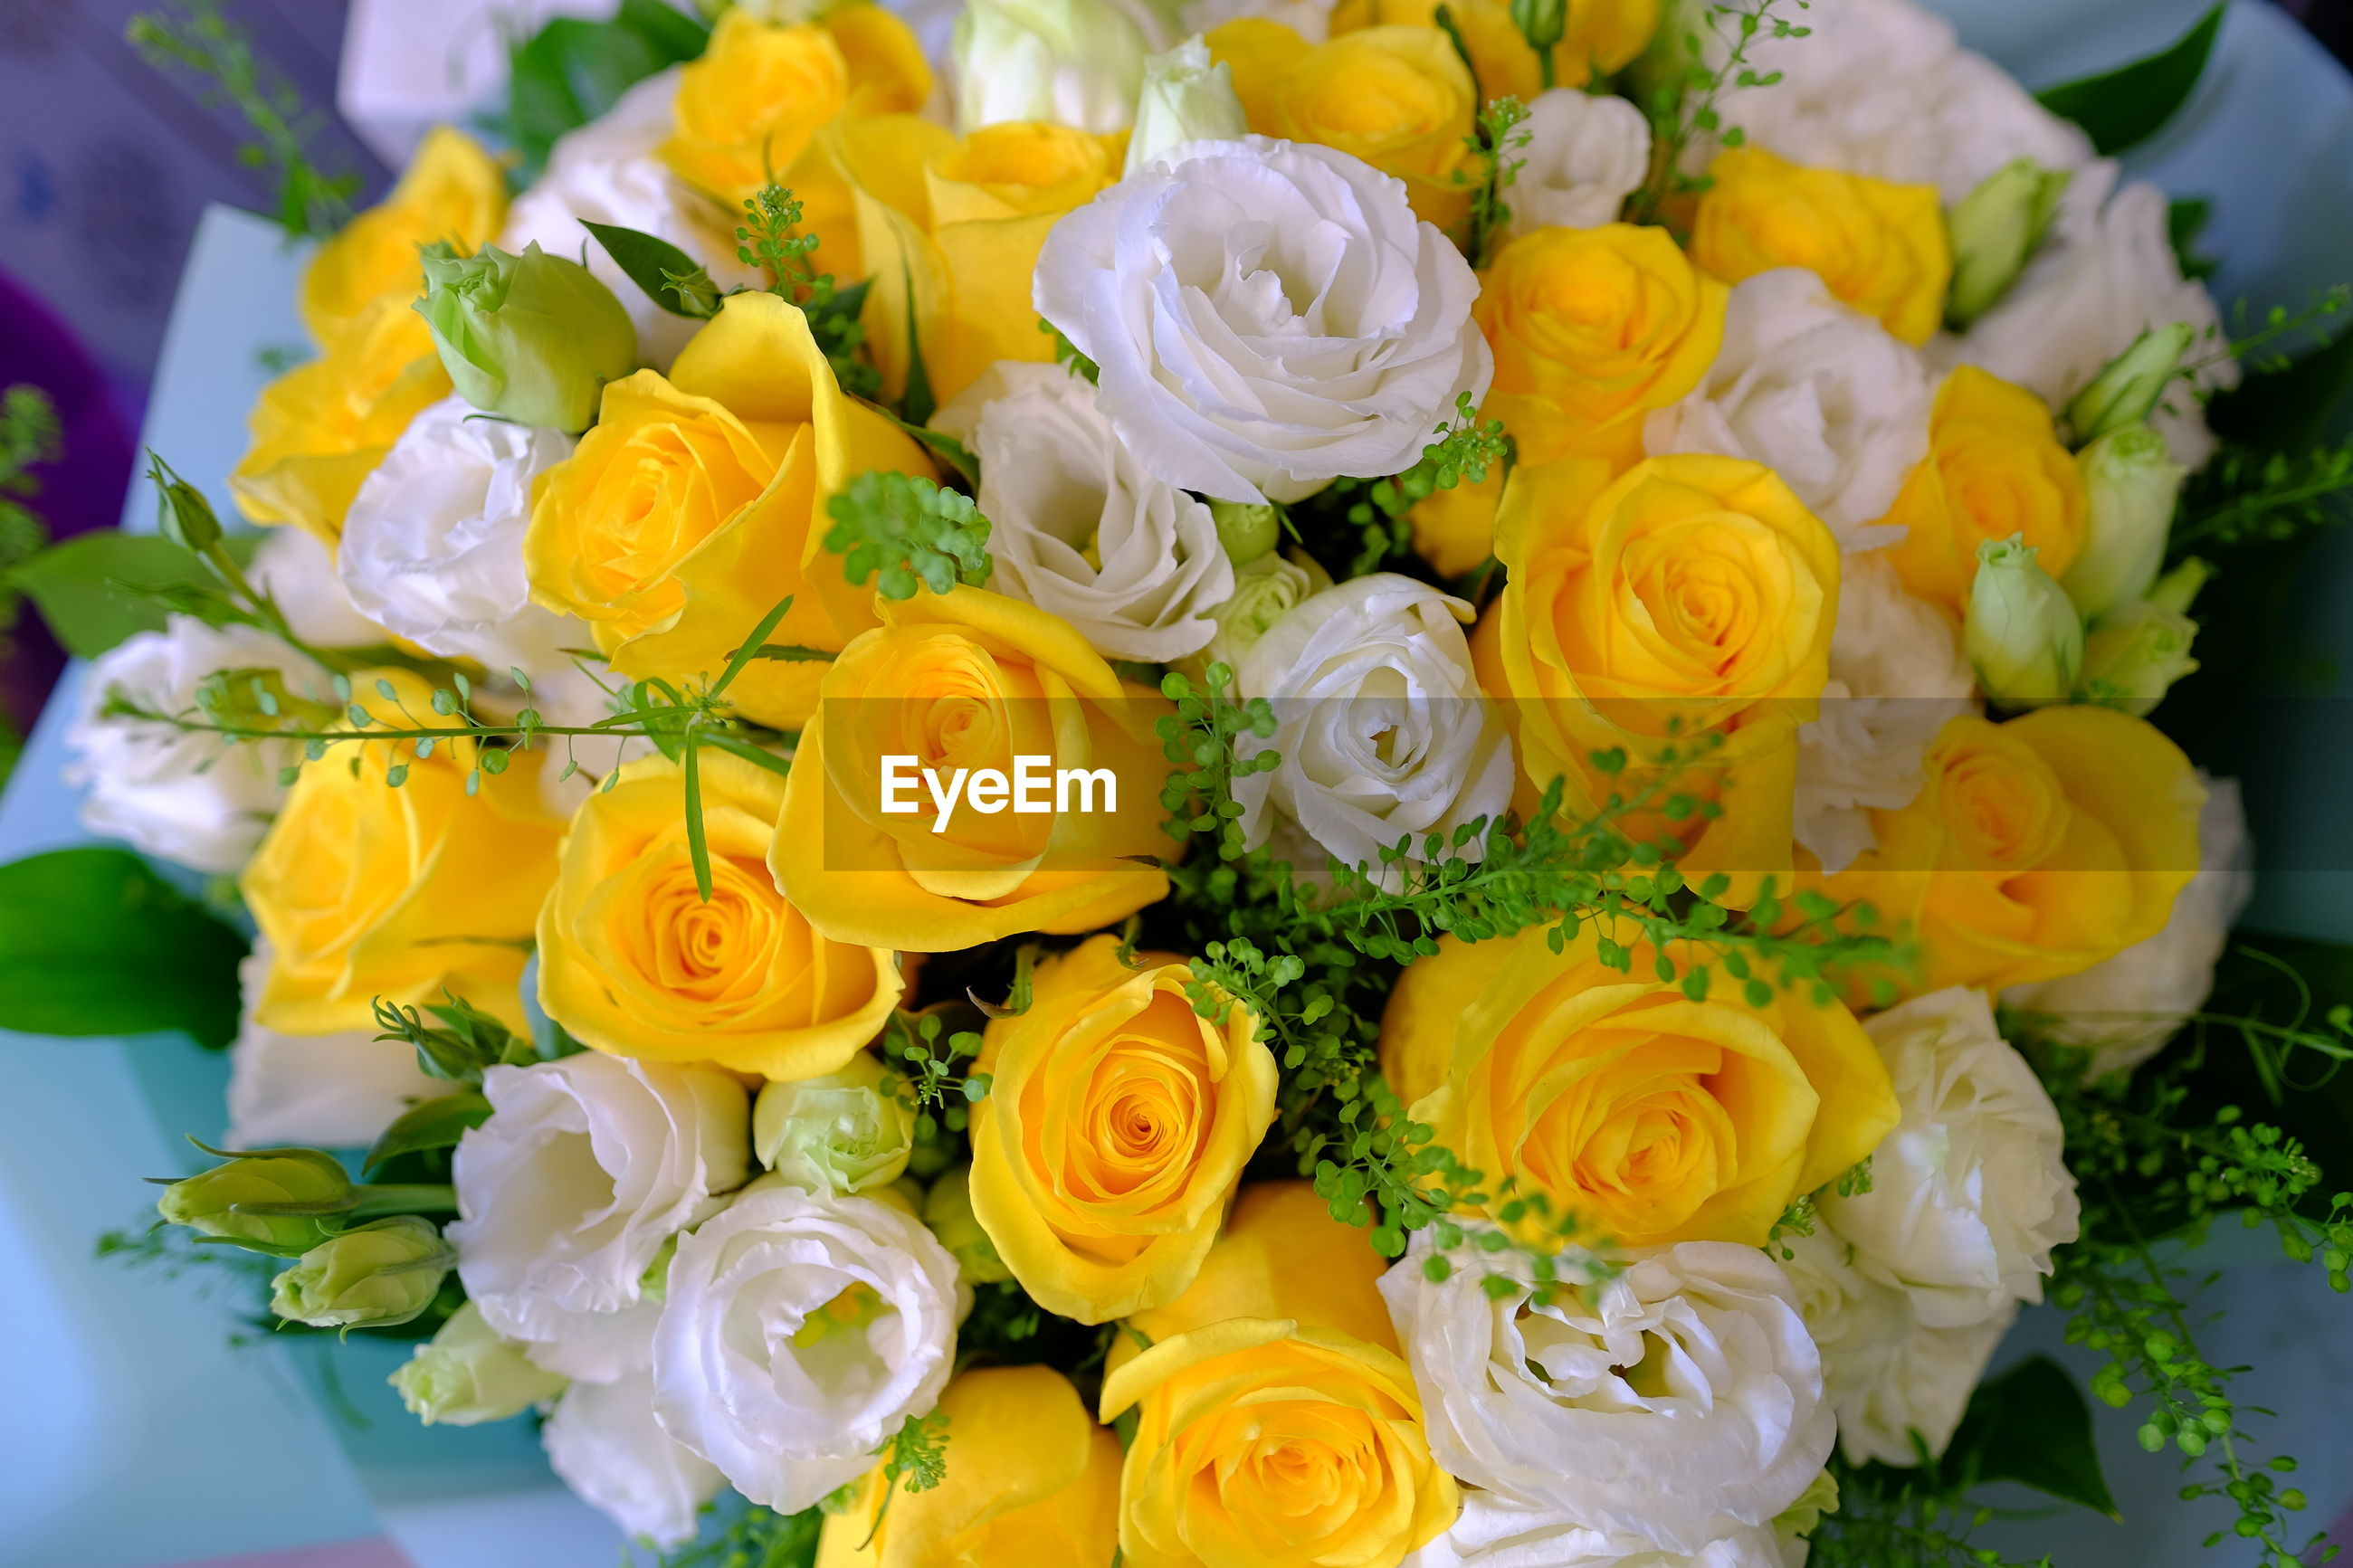 CLOSE-UP OF YELLOW ROSES ON BOUQUET